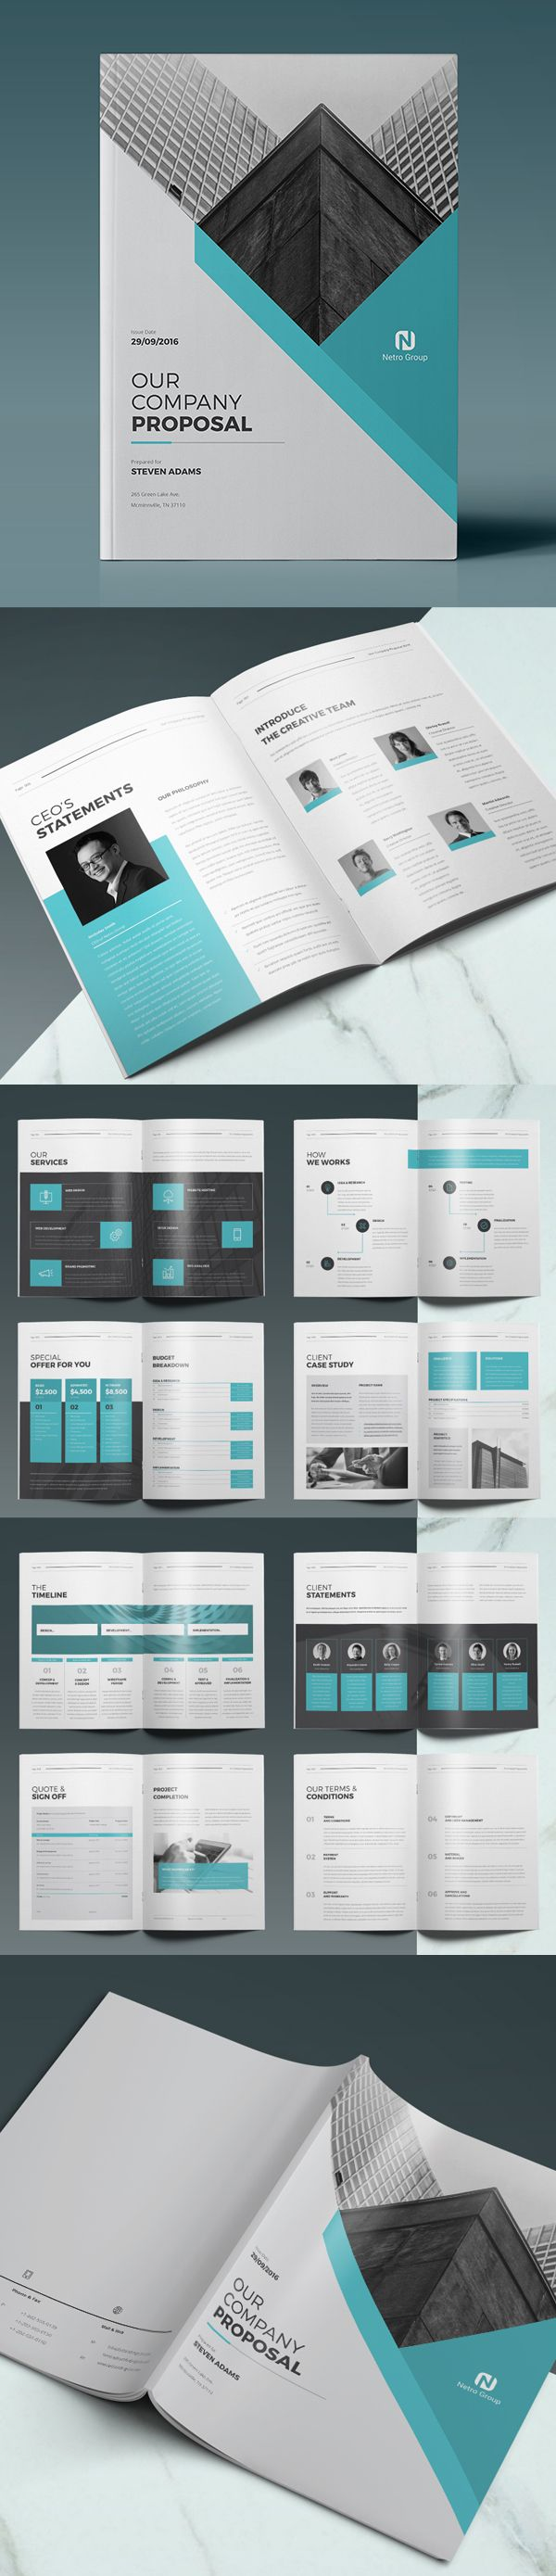 29 best Company Profile images on Pinterest | Brochure template ...